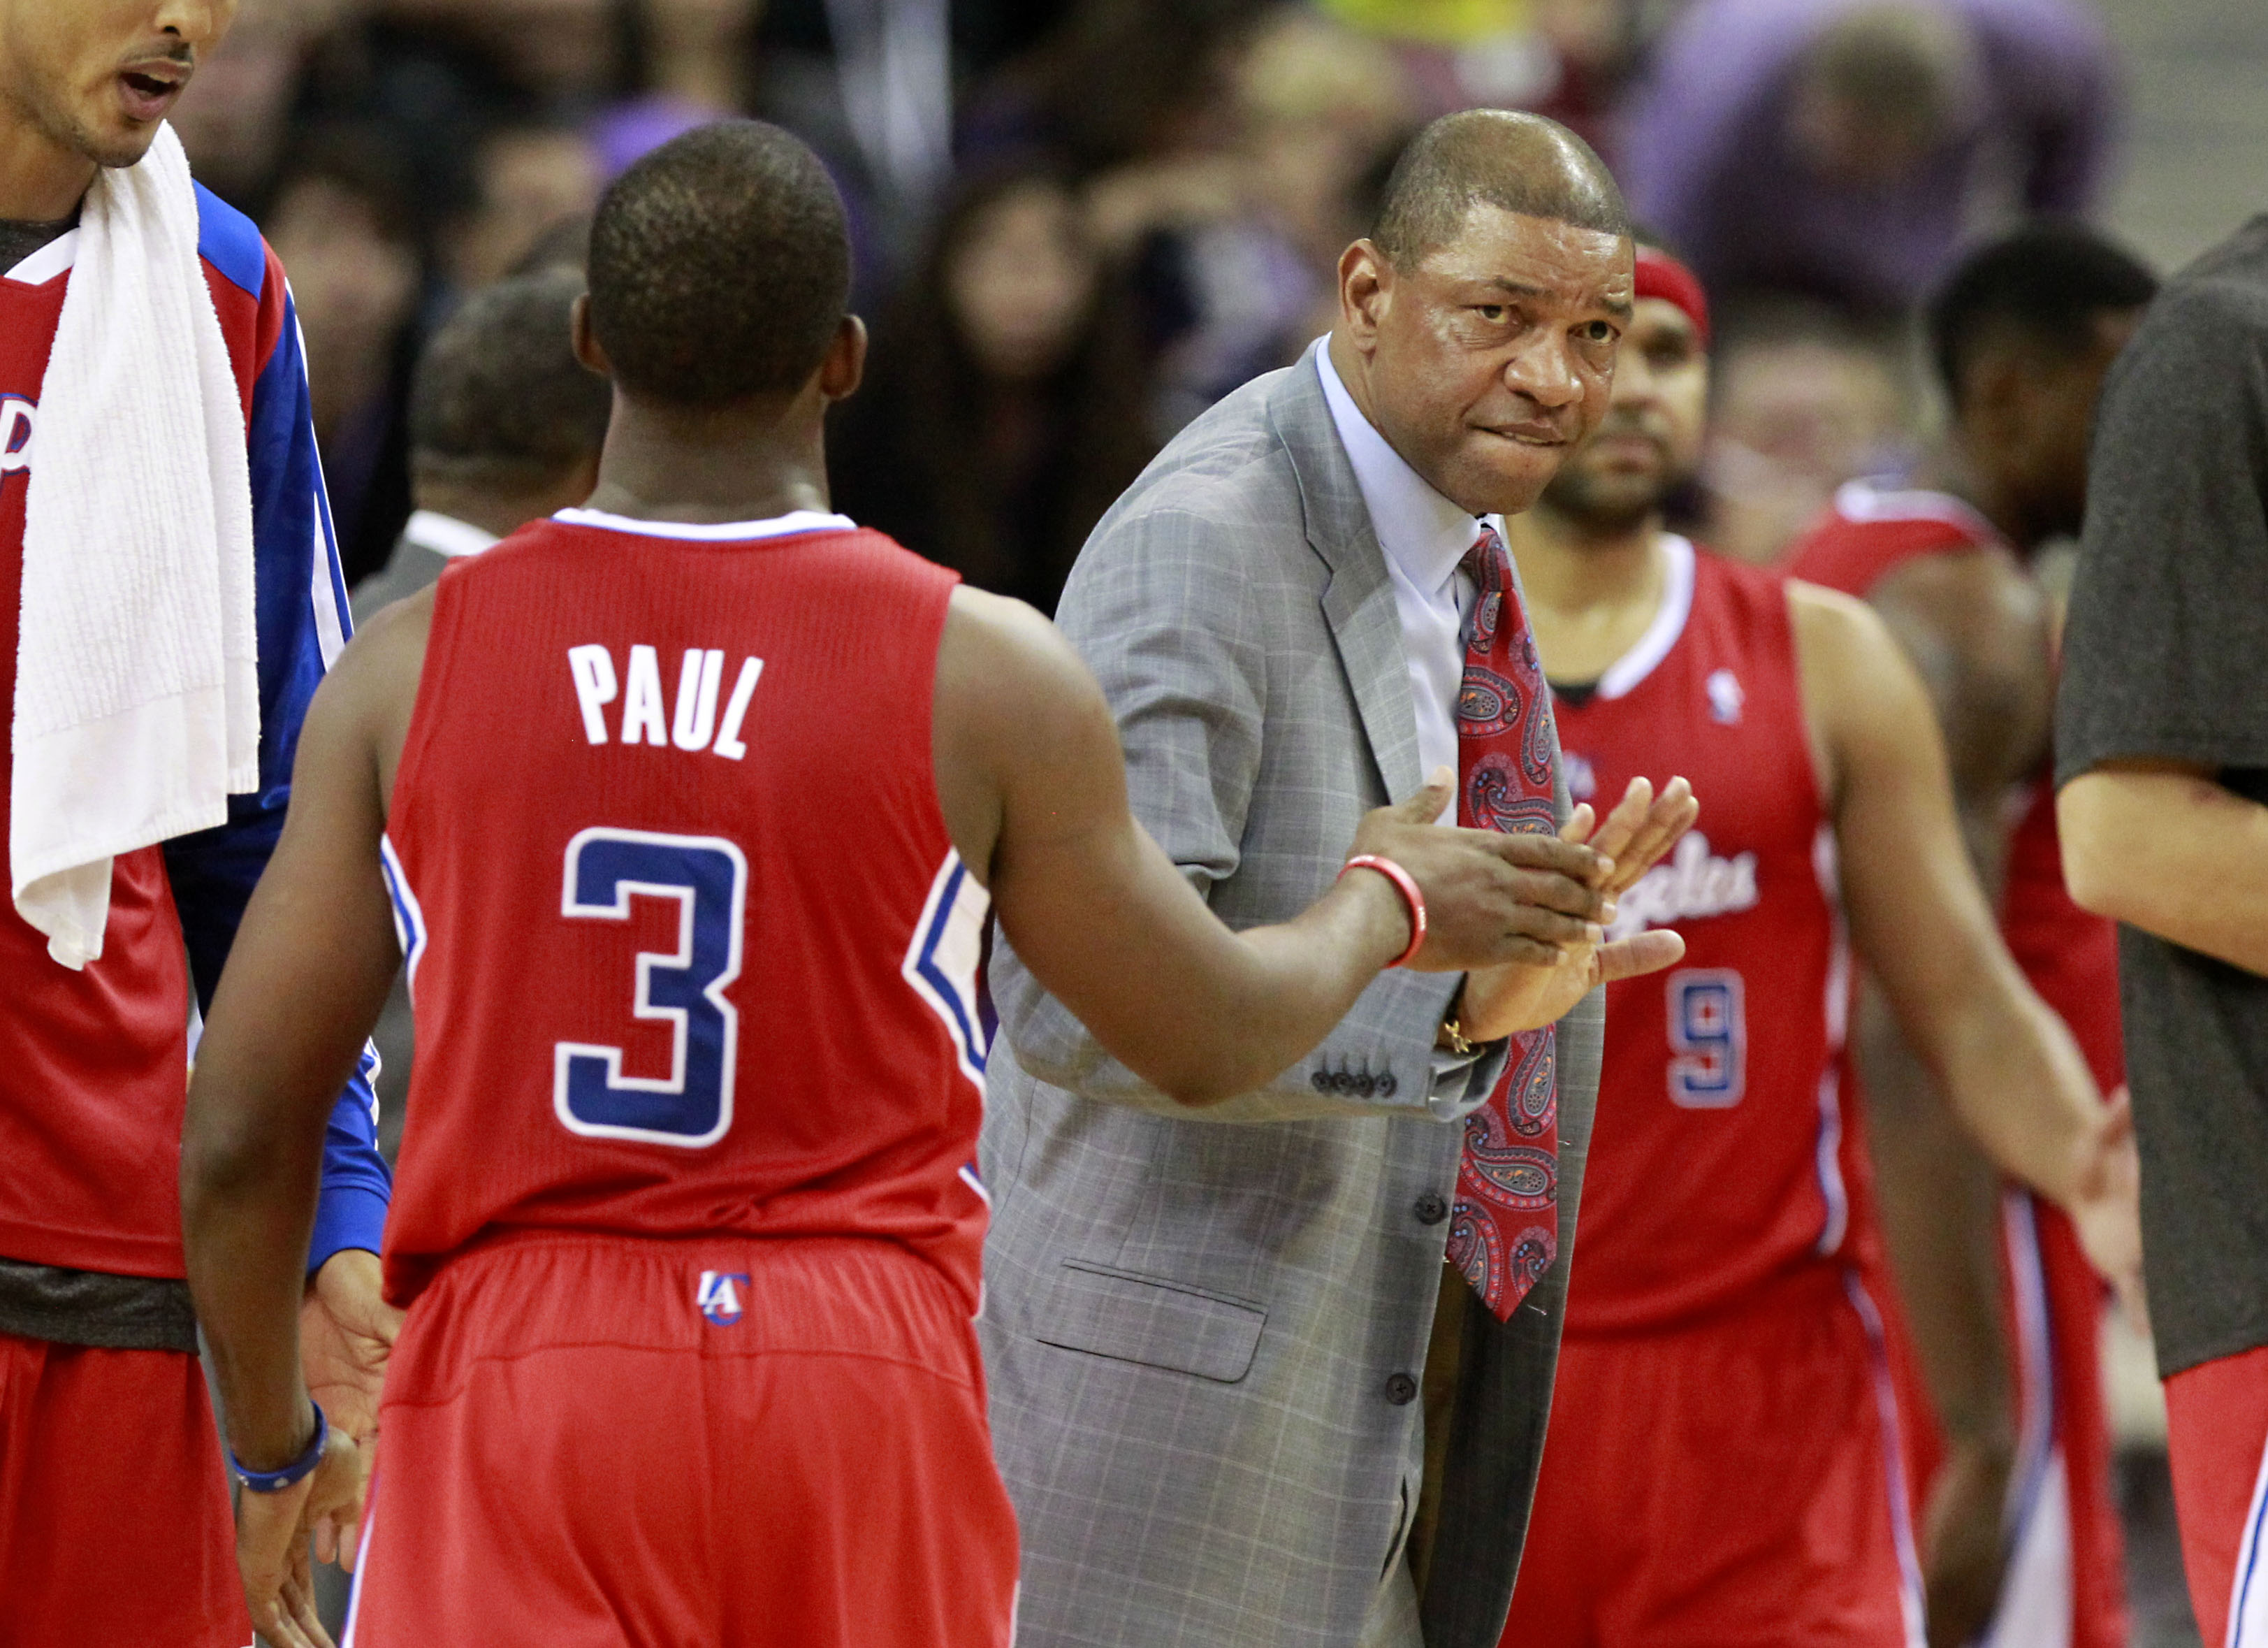 Los Angeles Clippers guard Chris Paul, left, slaps hands with head coach Doc Rivers as he walks off the court during a timeout in the closing moments of a 110-101 win over the Sacramento Kings in an NBA basketball game in Sacramento, Calif., Friday, Nov. 1, 2013